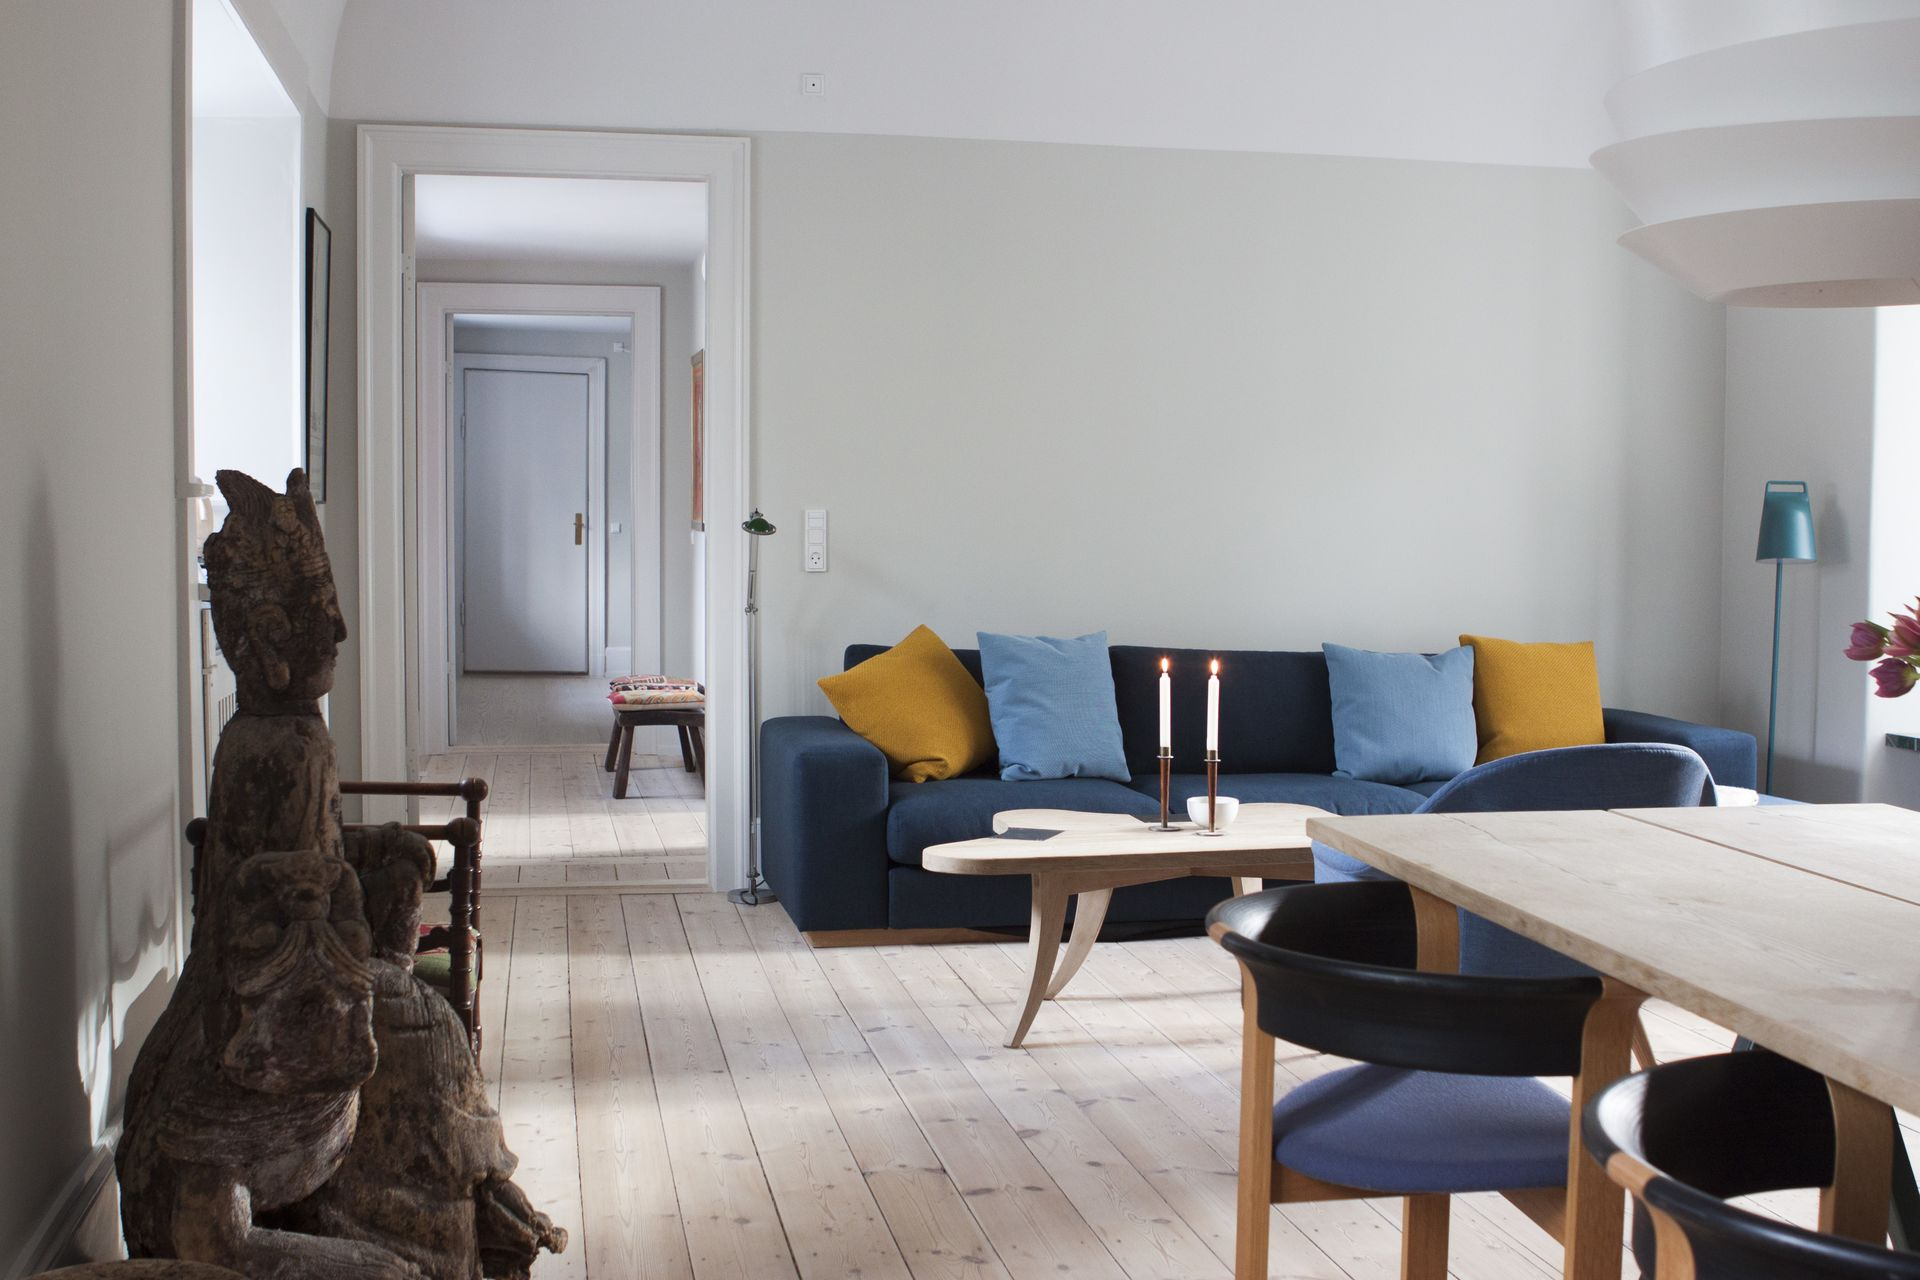 Tivoli Apartments Reviews Luxury For Up To 6 People 2 Bathrooms Apartment In Copenhagen